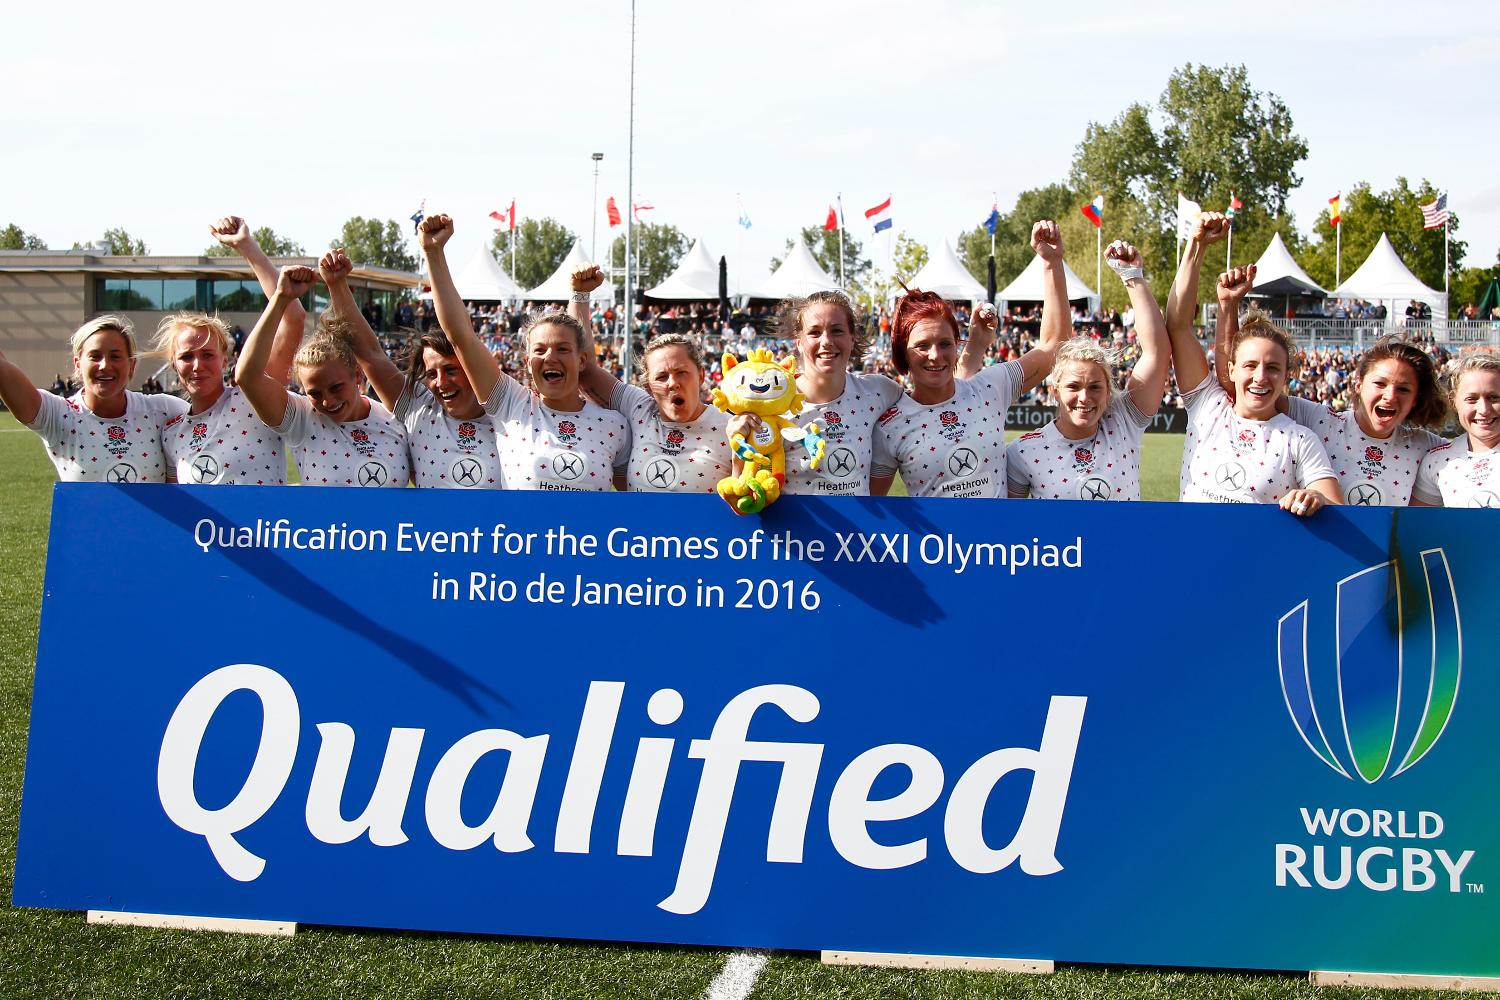 QUALIFIED: England are going to Rio 2016